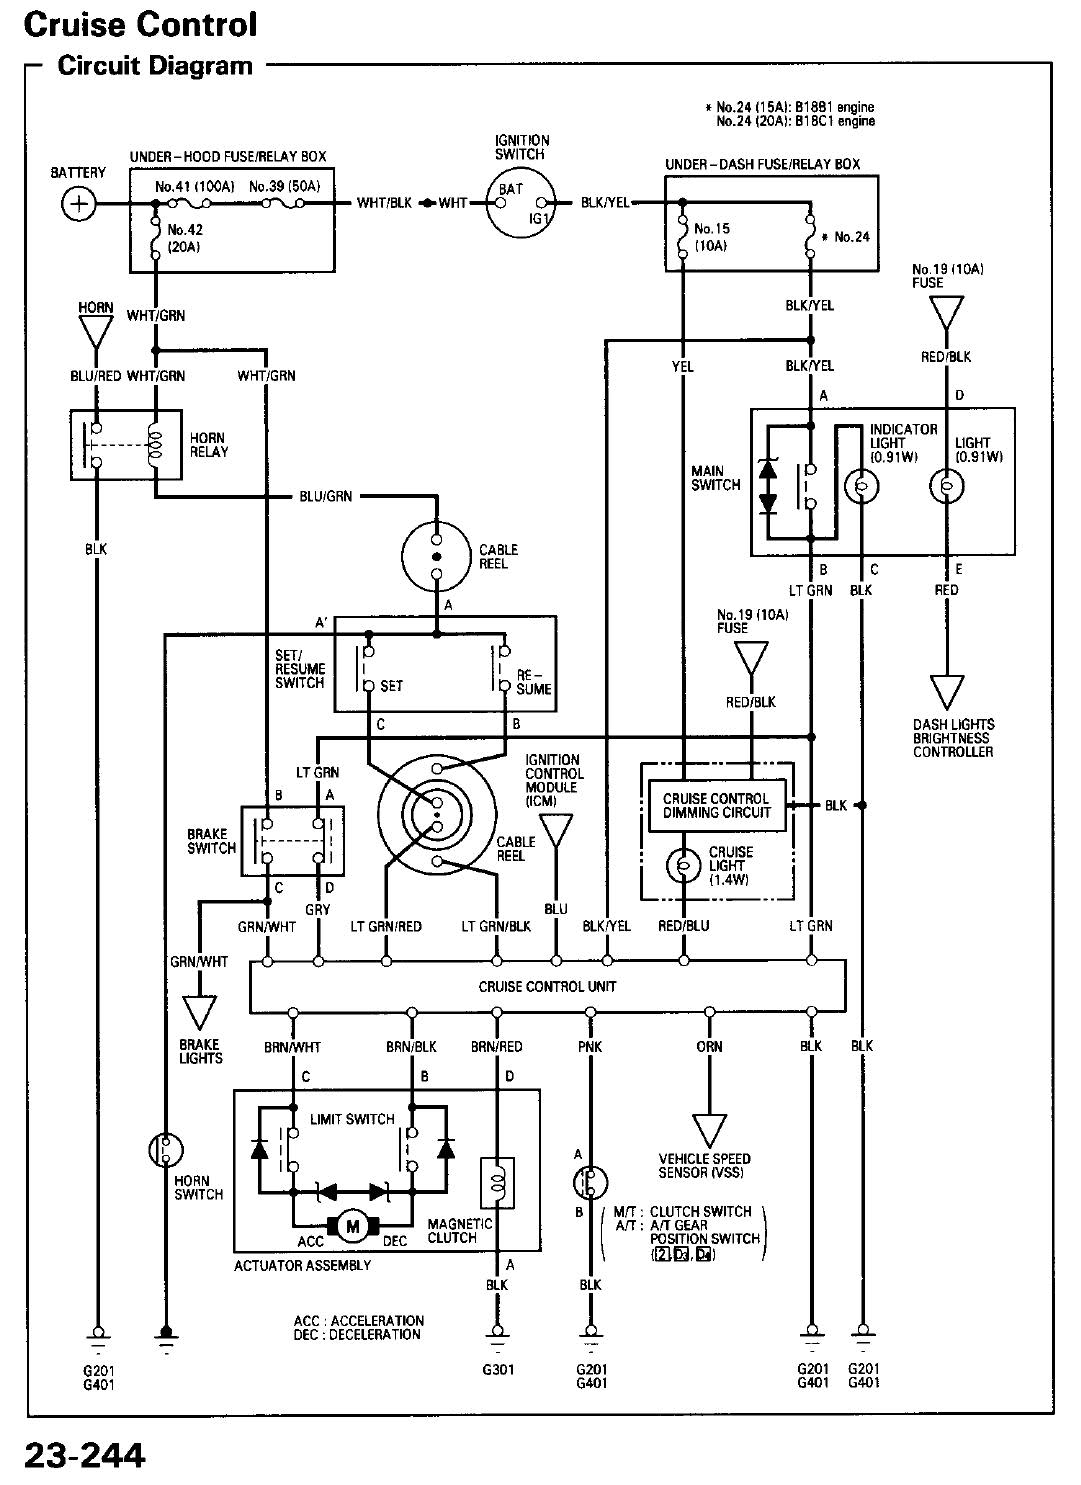 Electronic Circuits Page 502 :: Next.gr